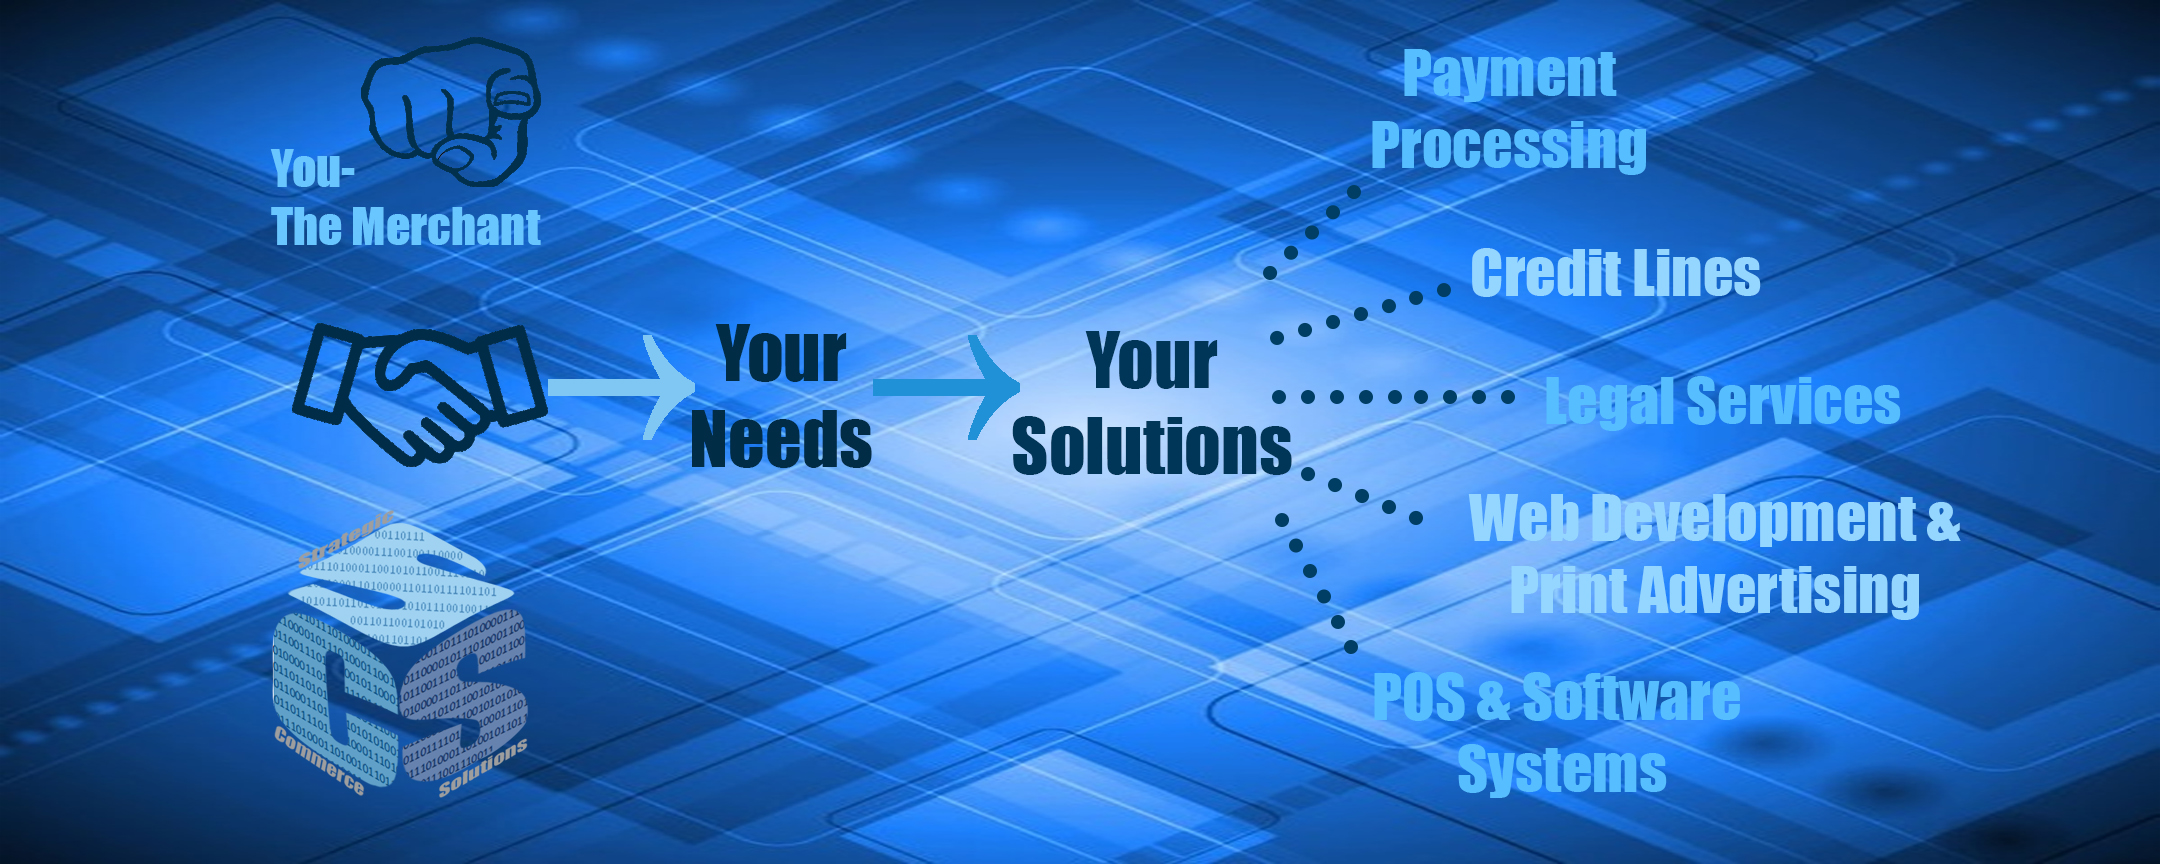 You - The Merchant. -> Your Needs. -> Your Solutions -> Payment Processing, Credit Lines, Legal Services, Advertising, POS & Software Systems.